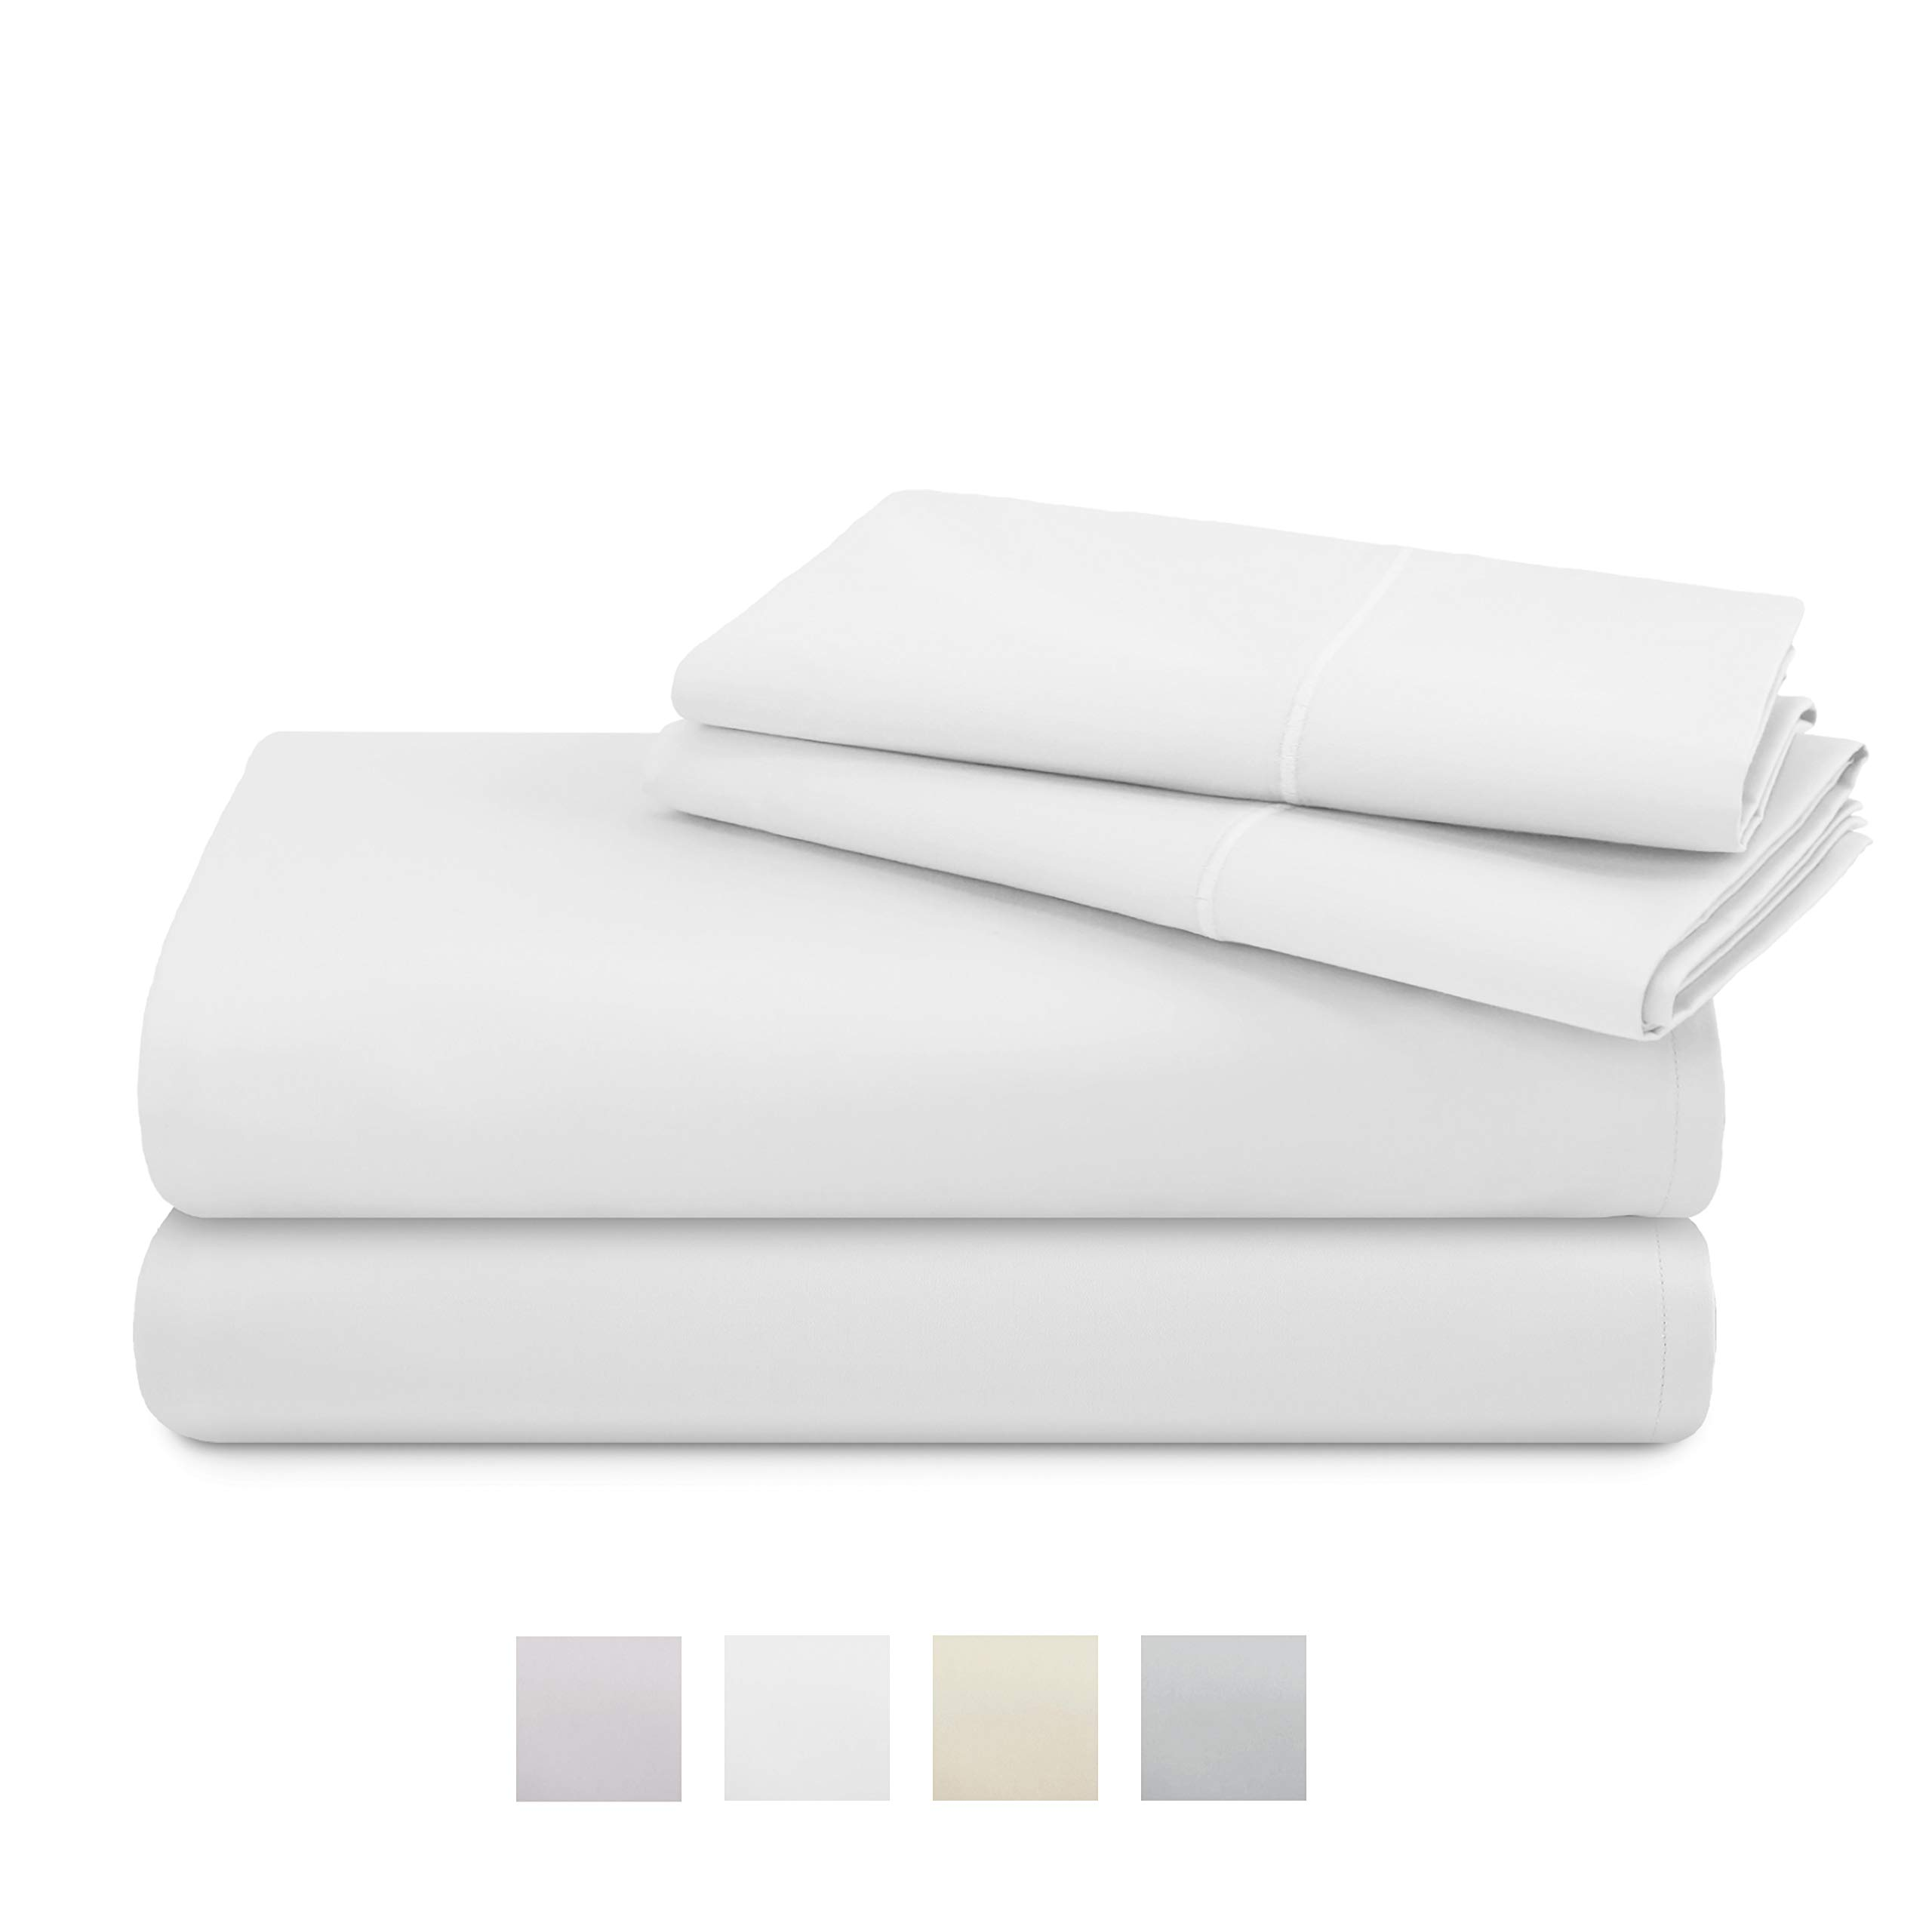 TRIDENT 600 Thread Count Queen sheets, 100% Cotton, Sateen Weave, deep pockets fit upto 20'', Wrinkle Resistant, Nectarsoft, 4 Piece Sheet Set, Techno-fit, Luxury Hotel Collection (Bright White, Queen)